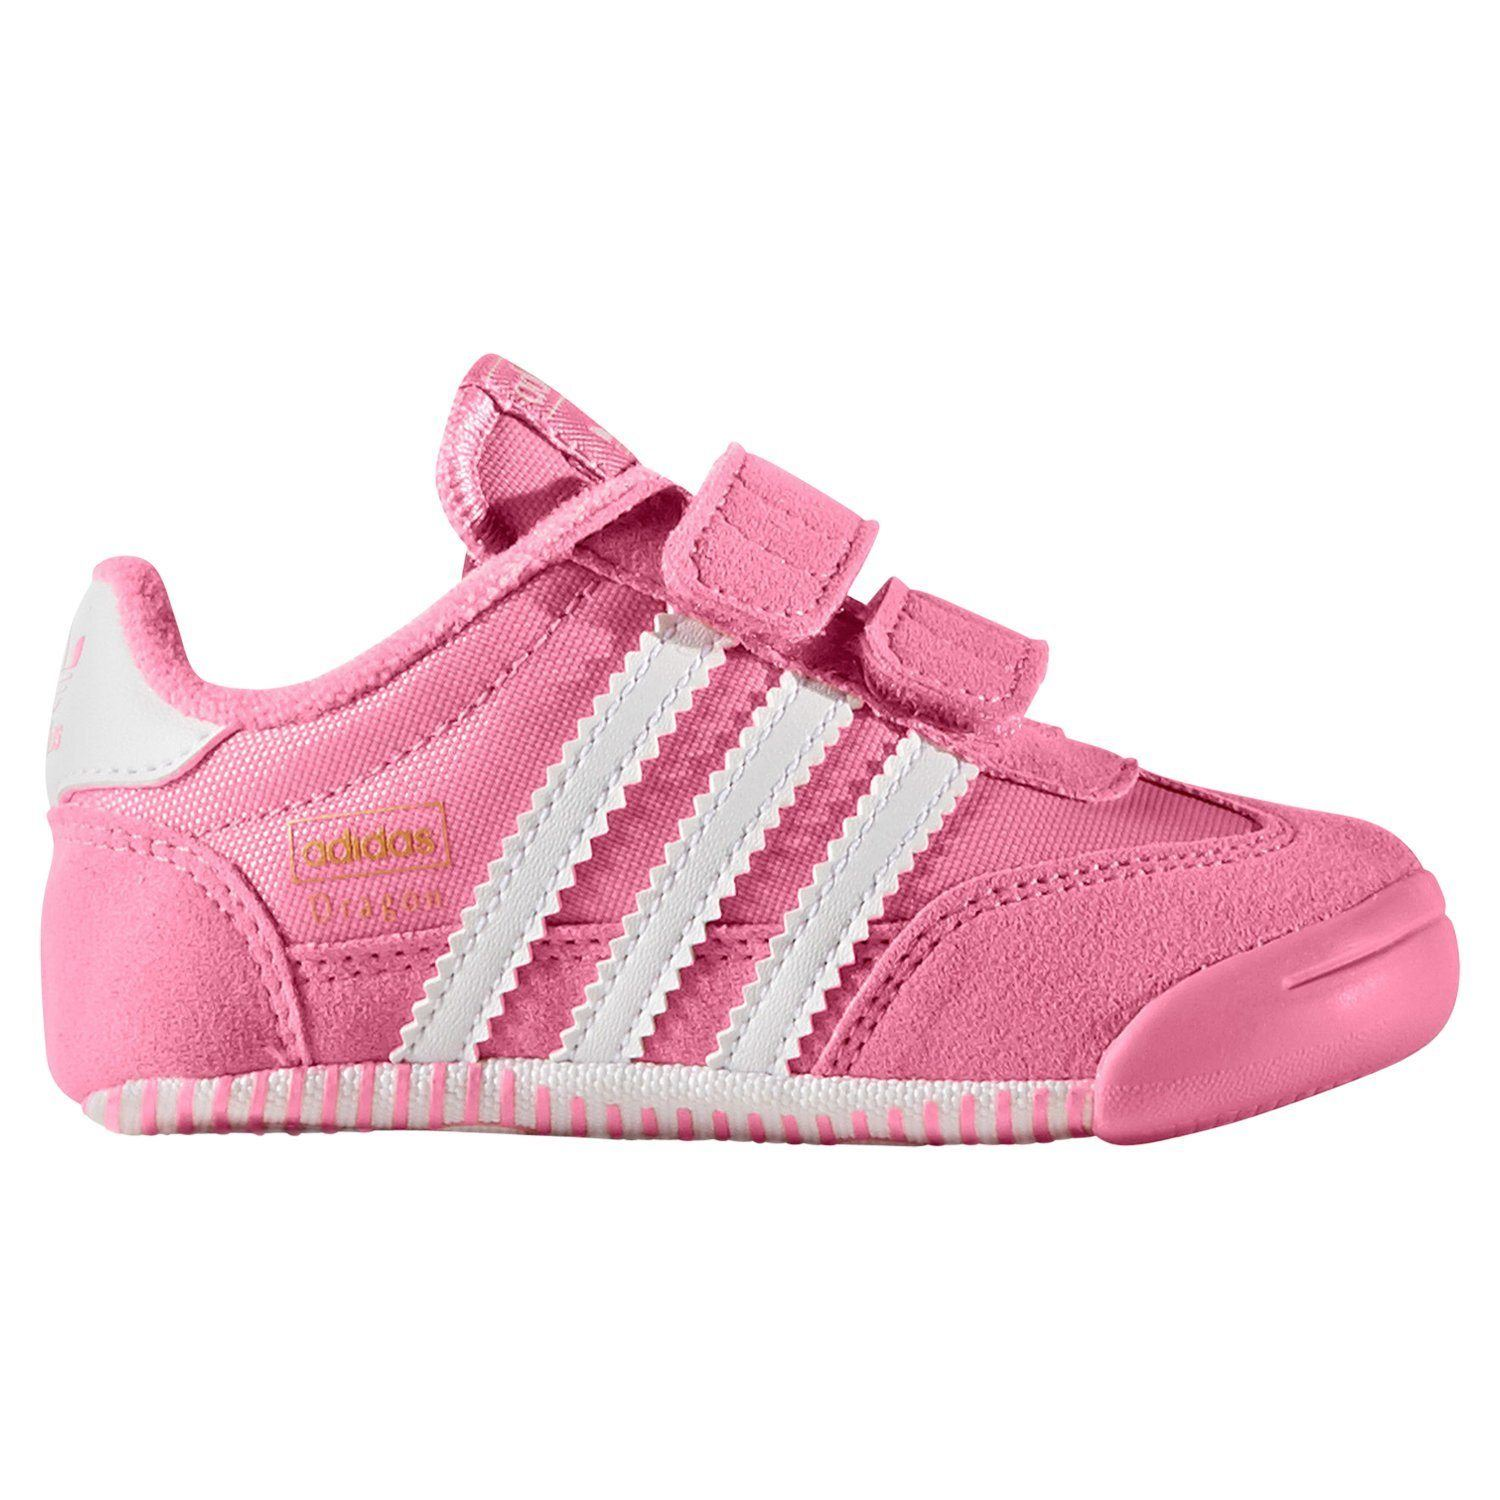 da90158107a28 adidas ORIGINALS DRAGON L2W CRIB TRAINERS PINK BOOTIES SHOES BABY KIDS GIRLS  NEW